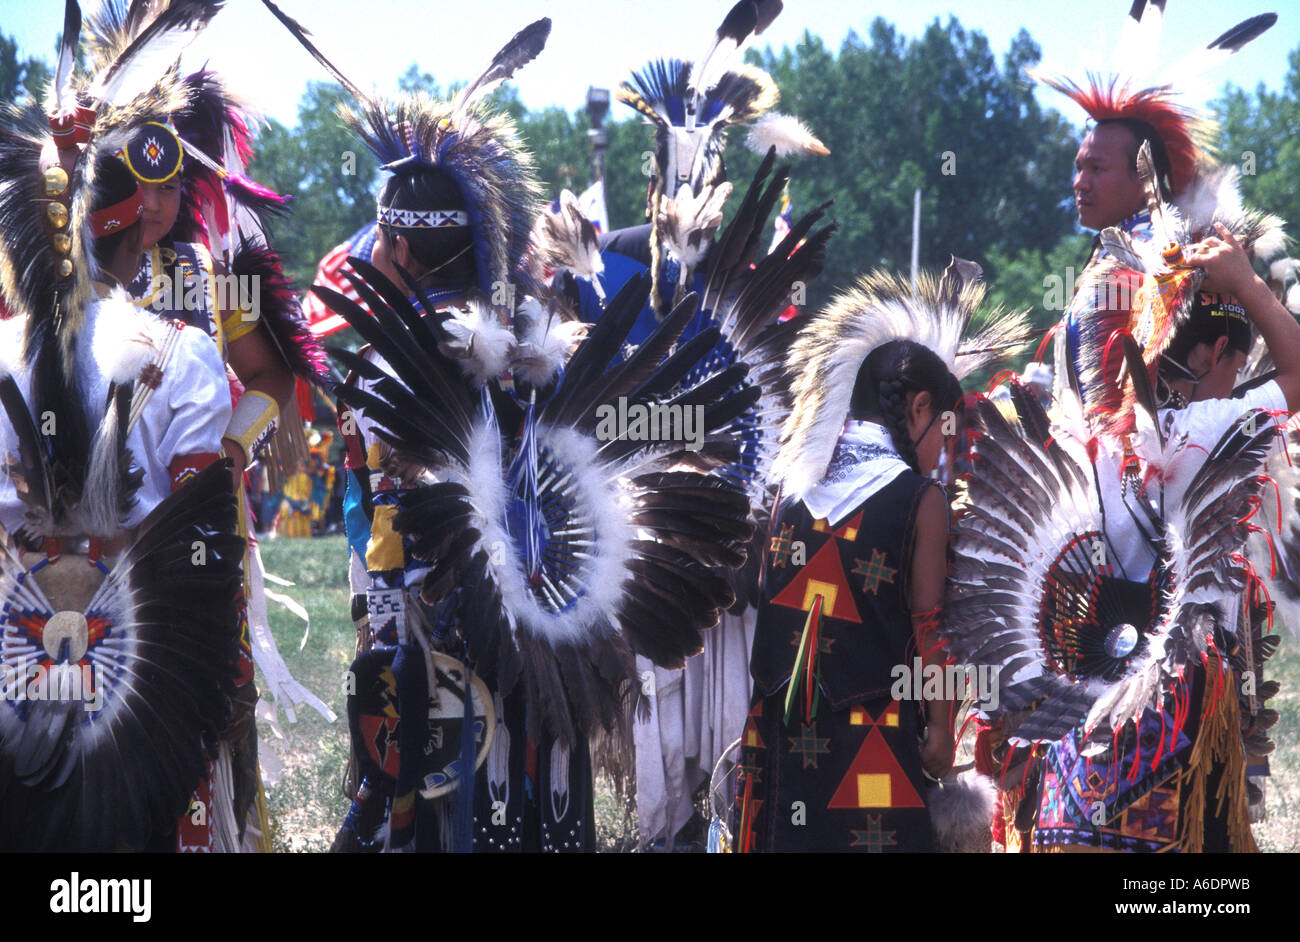 A group of Oglala Sioux gather at a traditional powwow - Stock Image